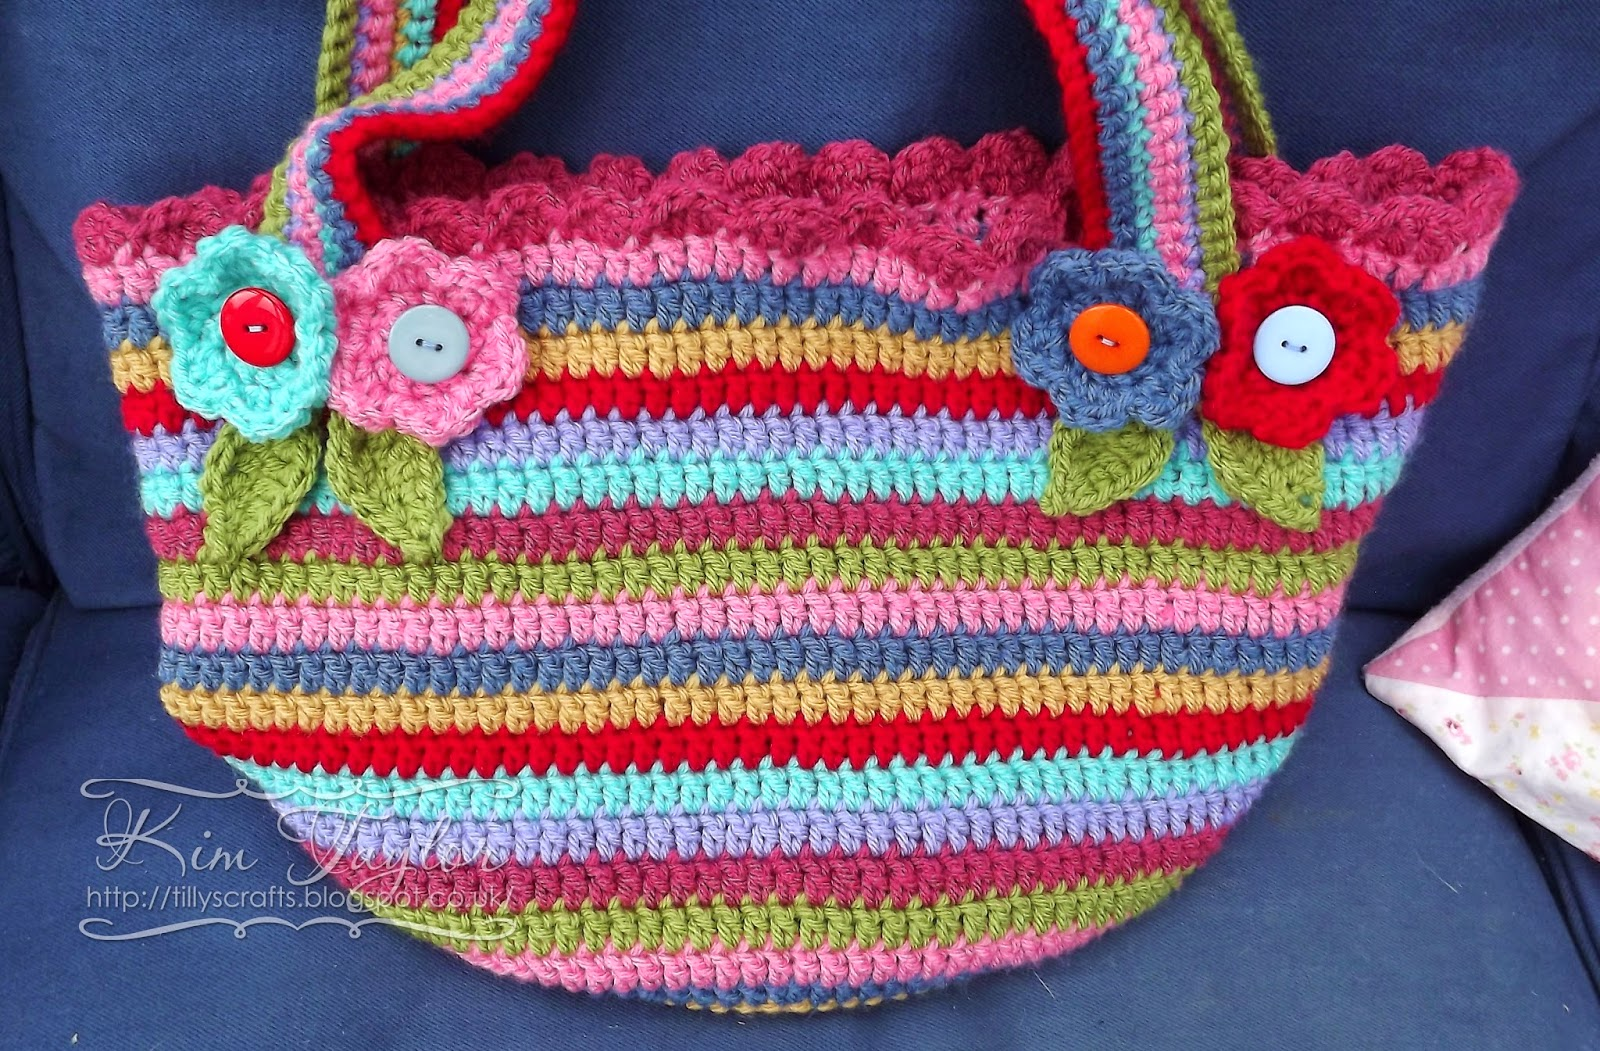 Crochet Bag And Pattern : Tillys Crafts: Chunky Crochet Bag!